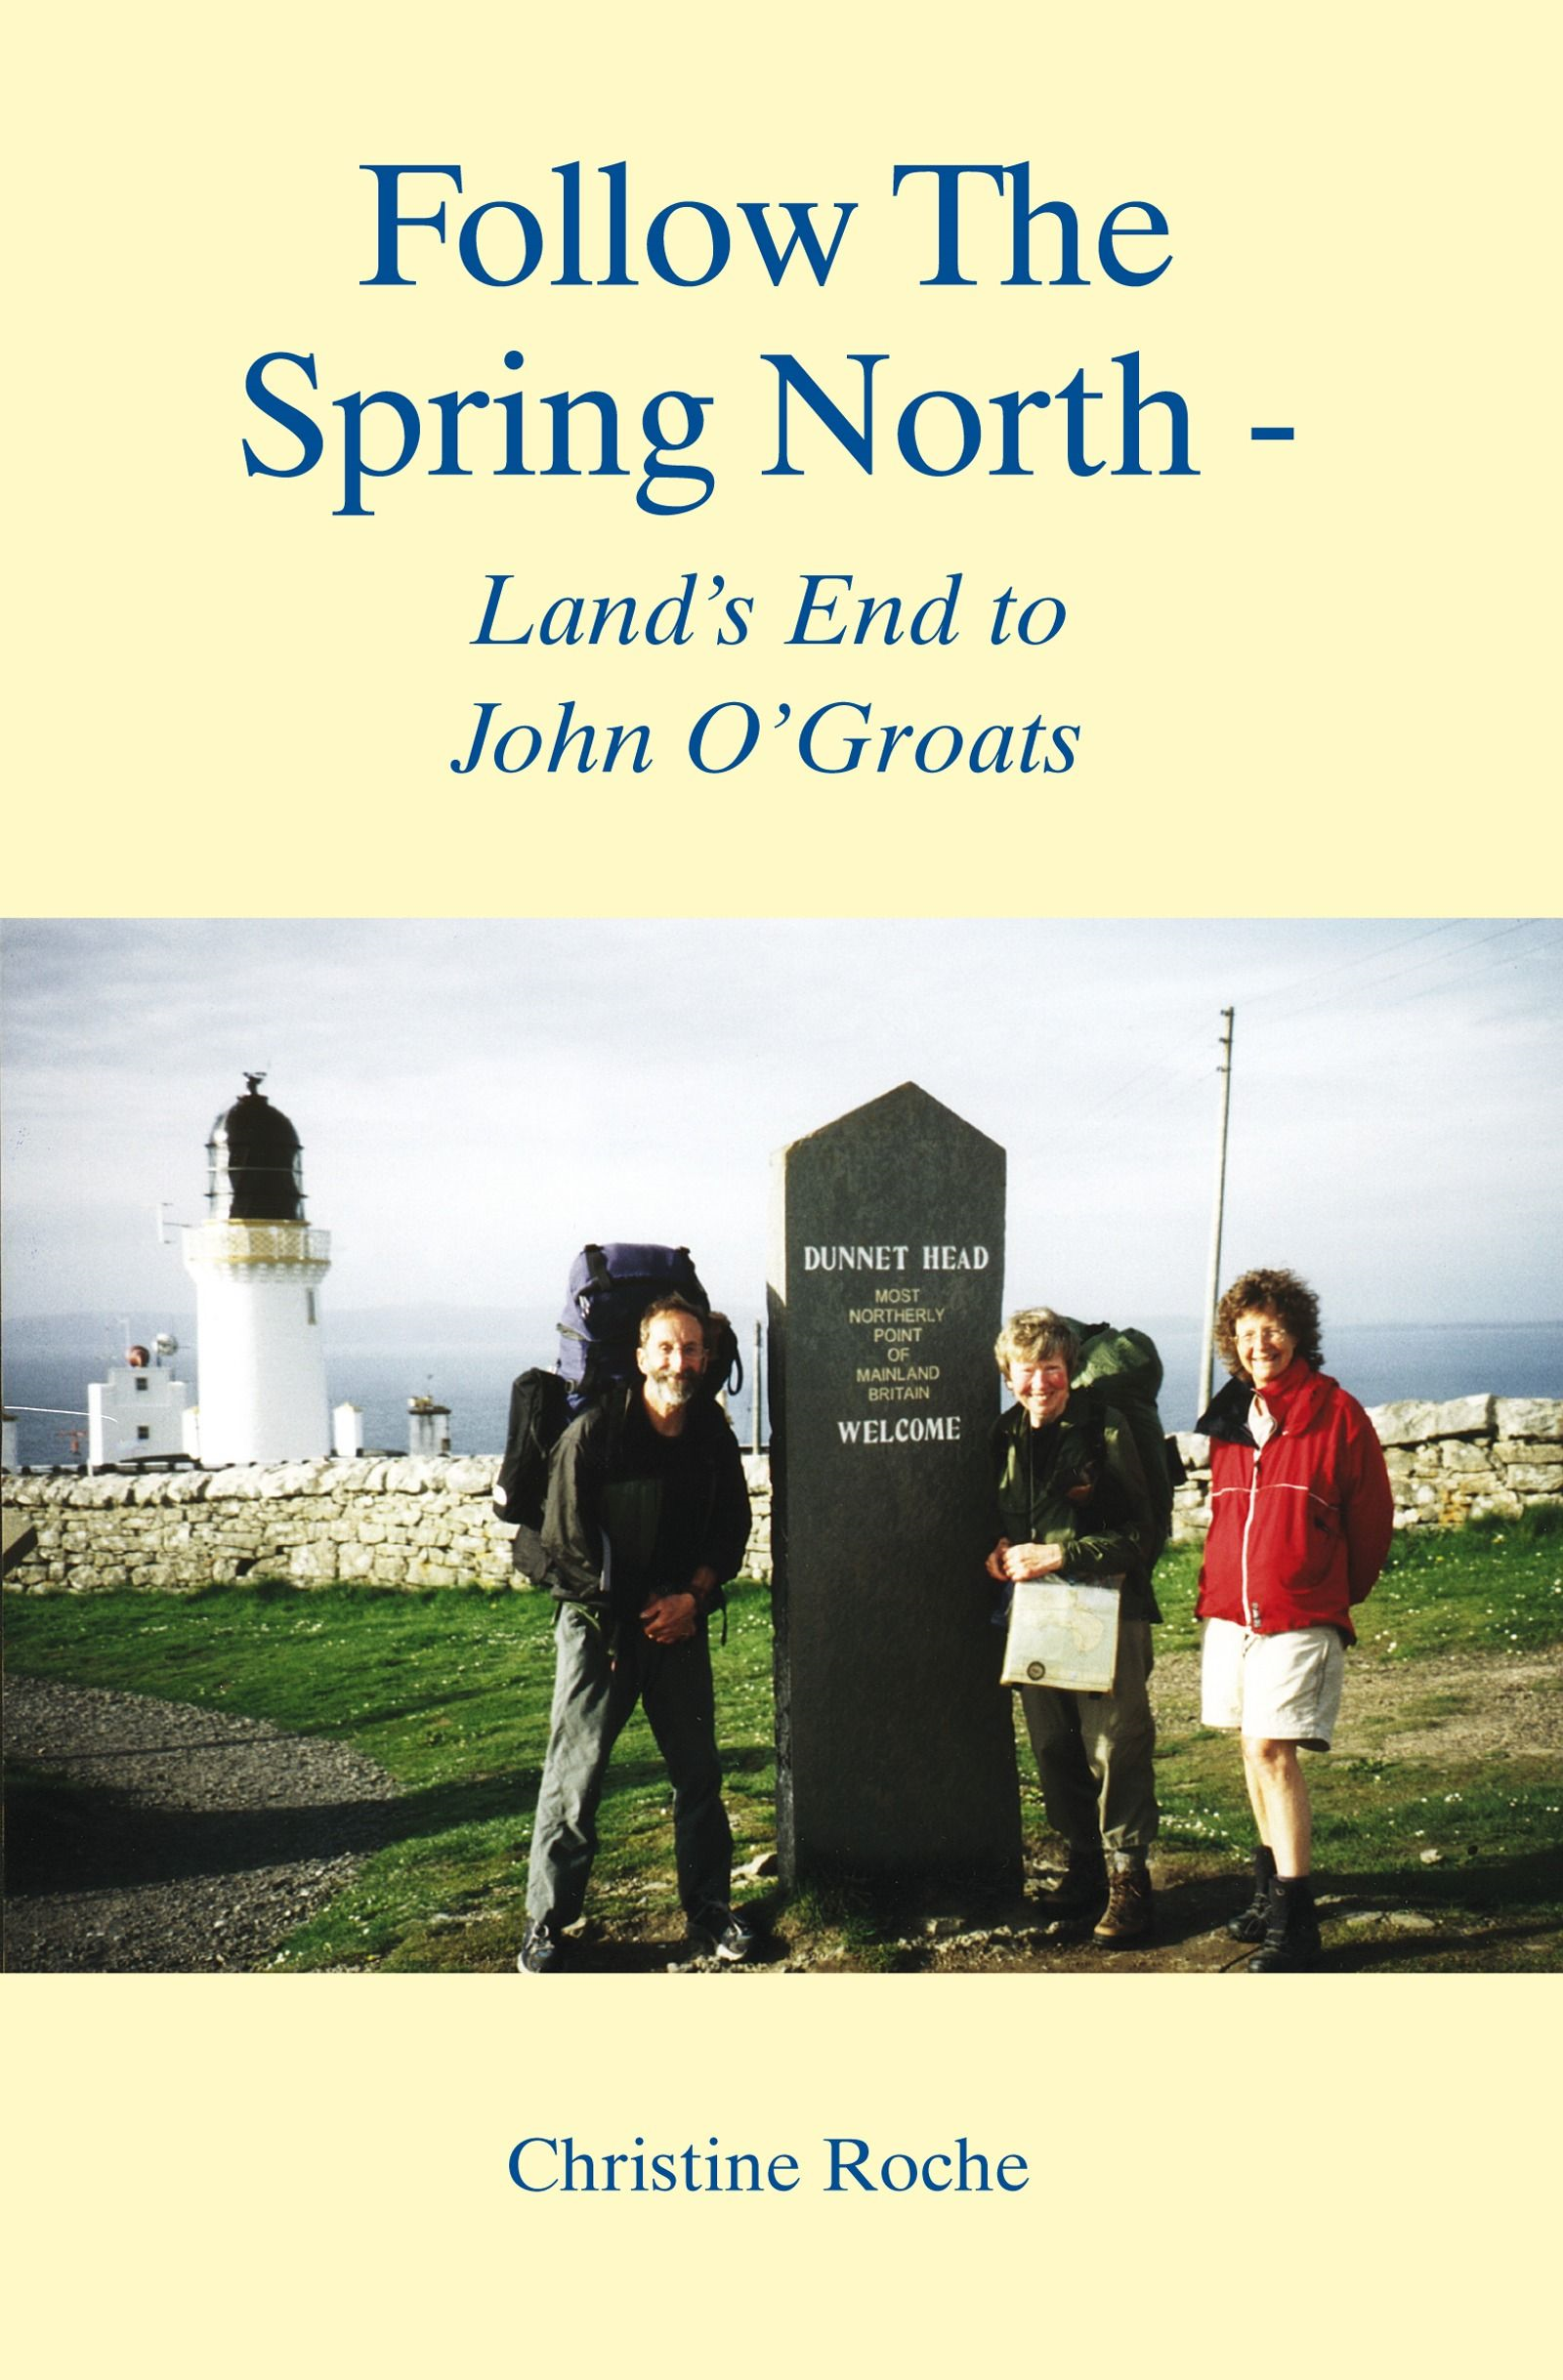 Follow The Spring North - Land's End To John O'Groats By: Christine Roche